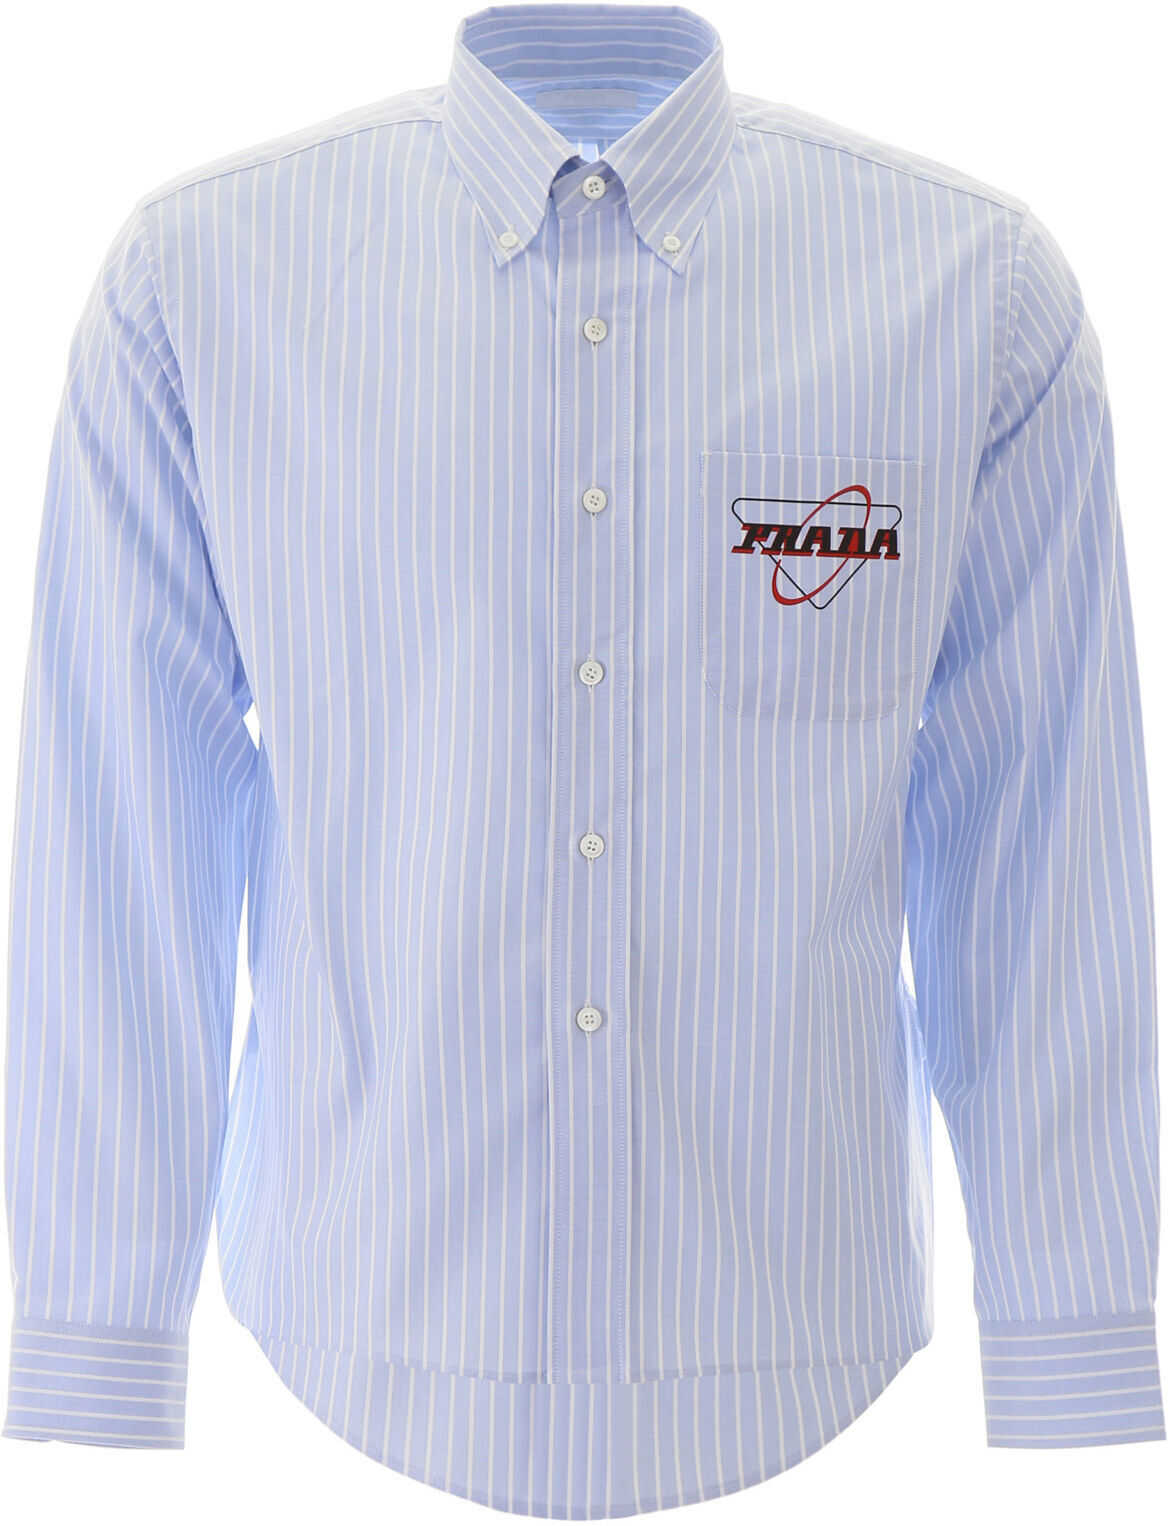 Prada Striped Shirt With Logo CIELO